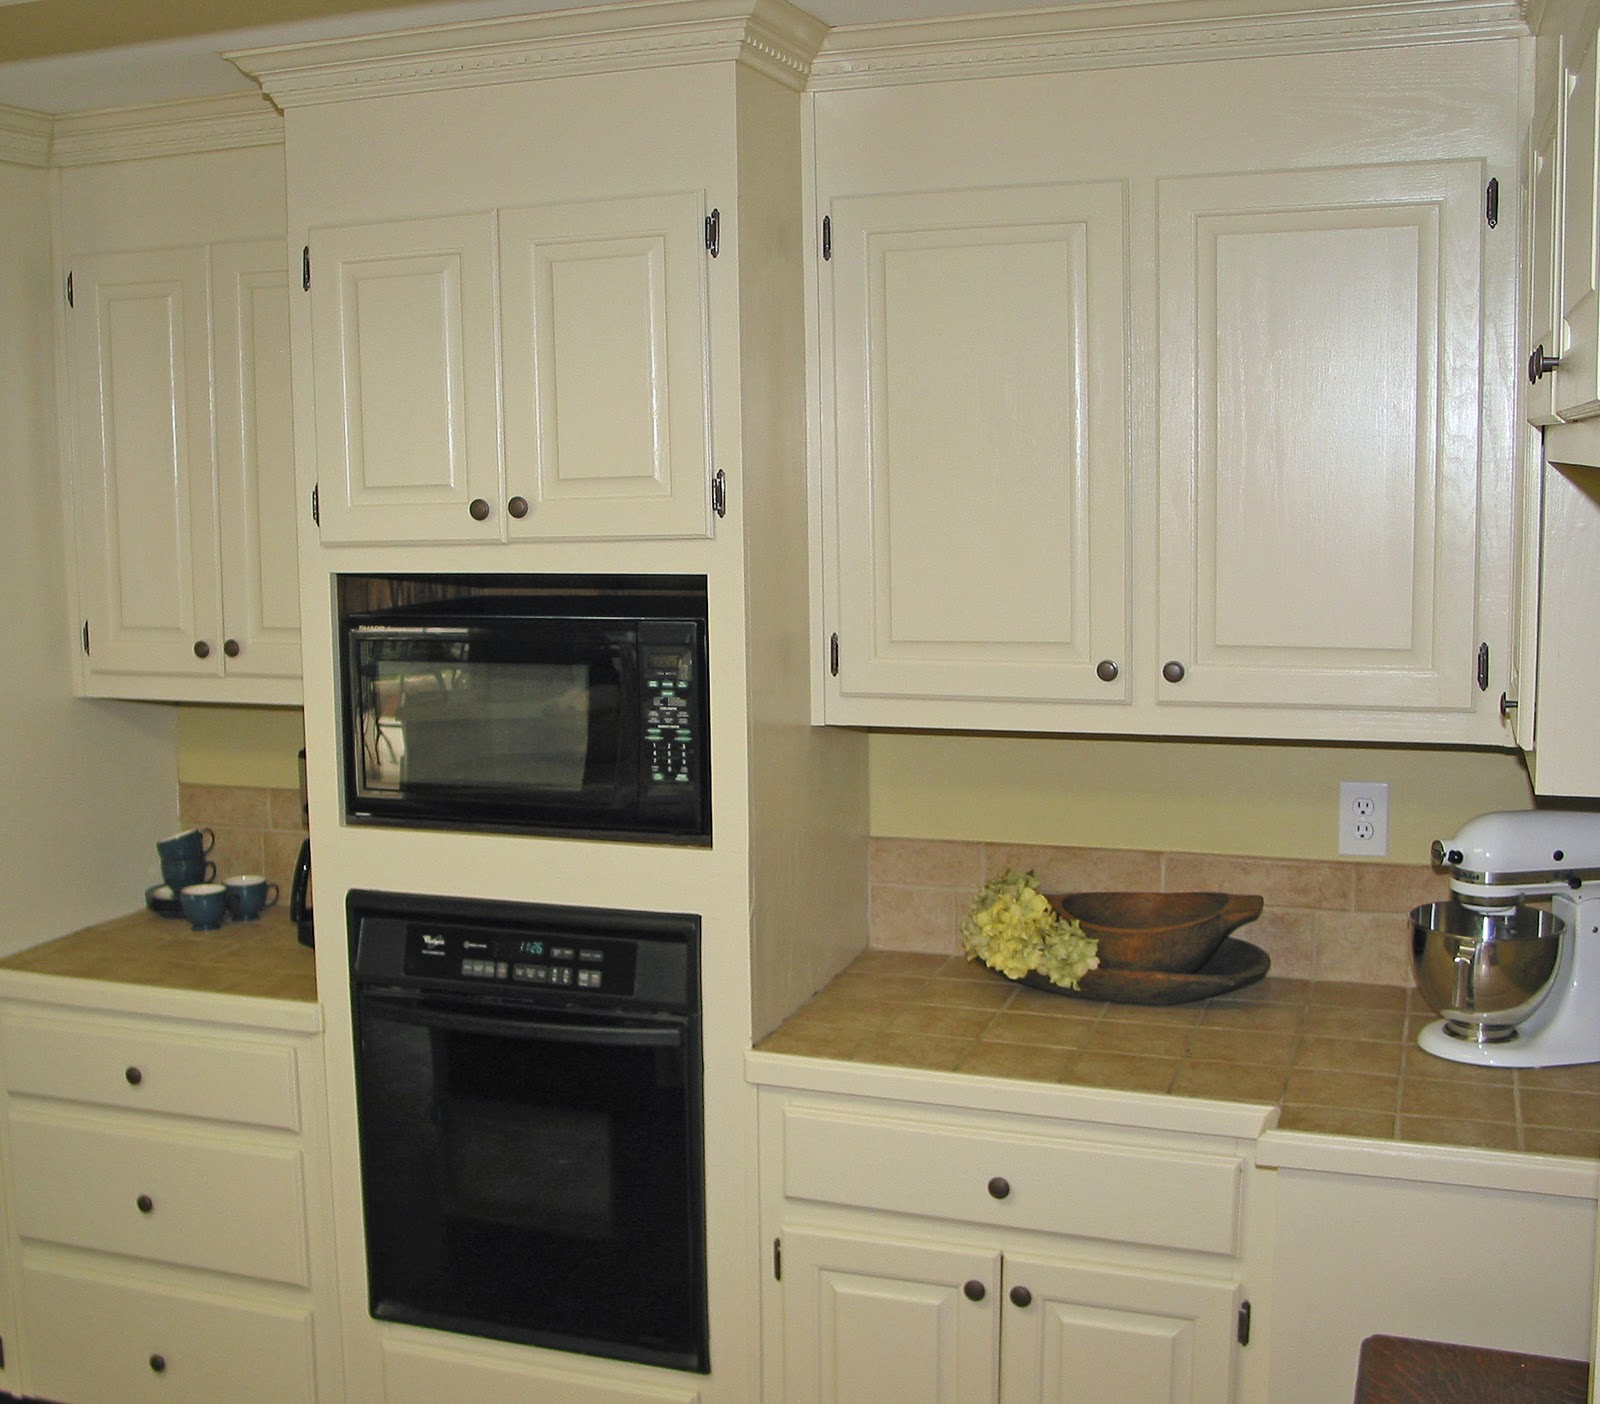 Kitchen Staging Before And After: Goodbye, House. Hello, Home! Blog : Home Staging -- A